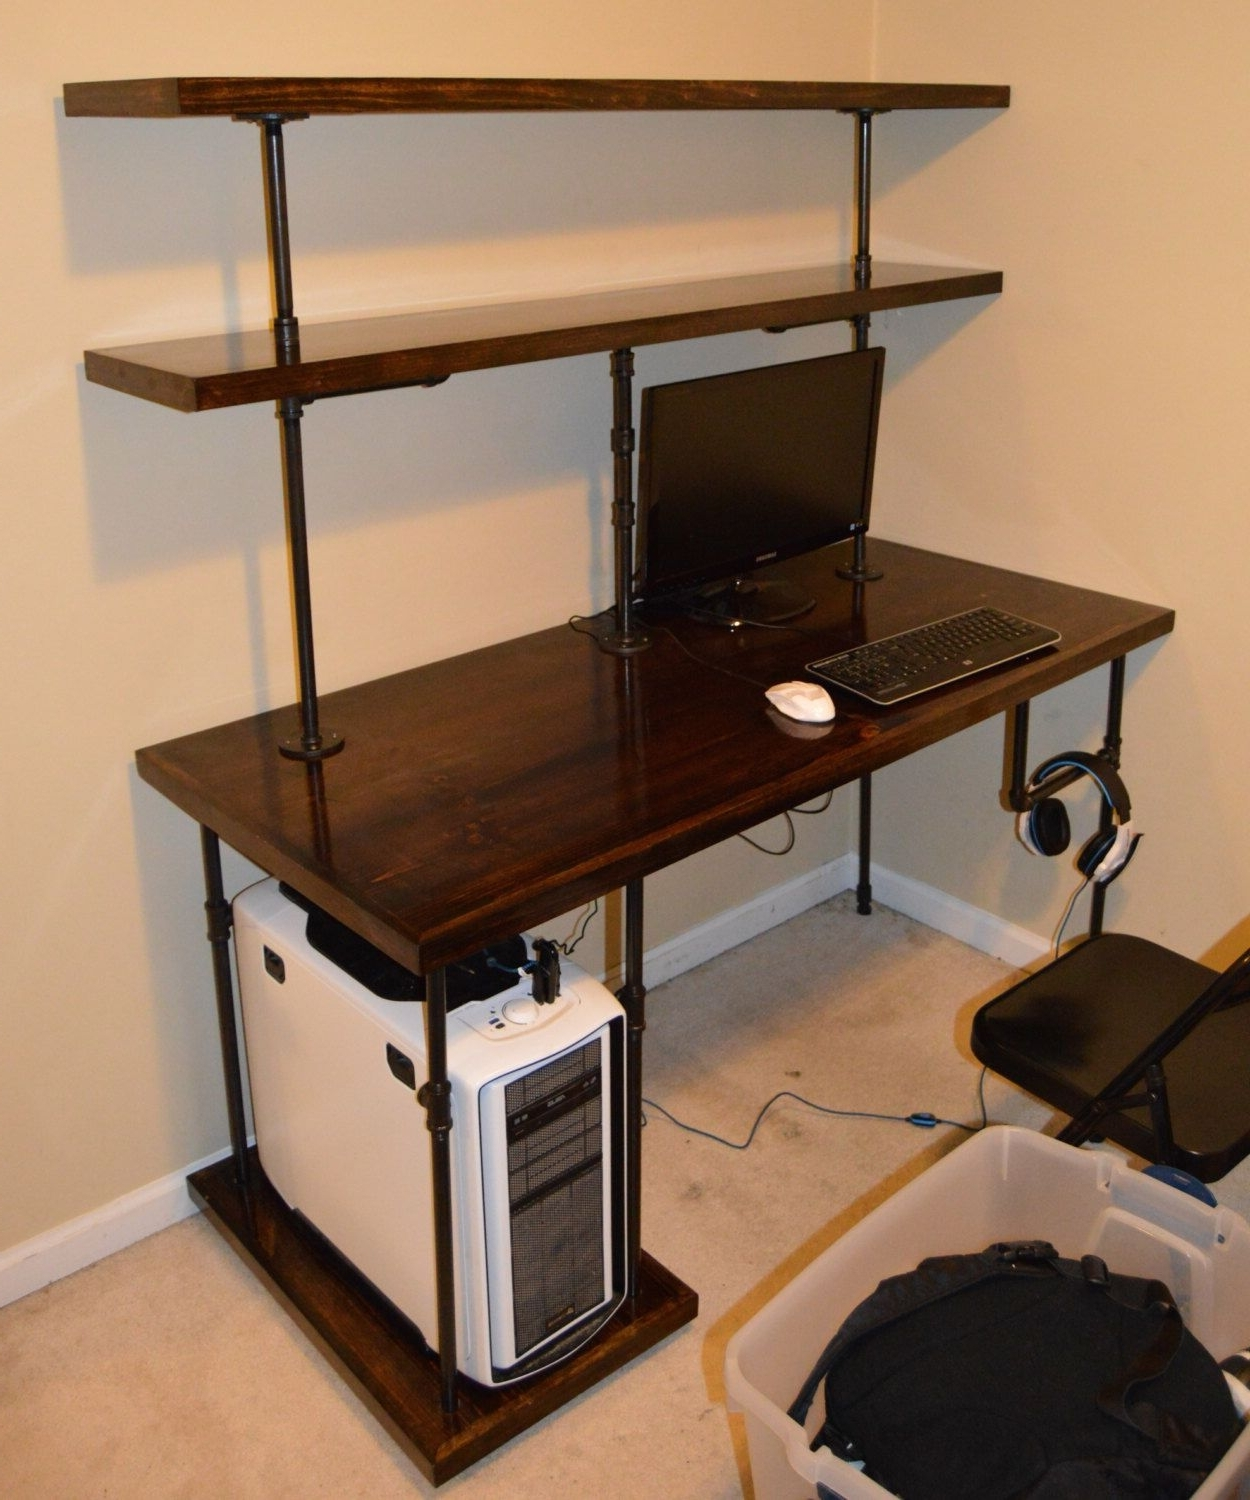 Diy Computer Desks Within Widely Used 23+ Diy Computer Desk Ideas That Make More Spirit Work (Gallery 8 of 20)